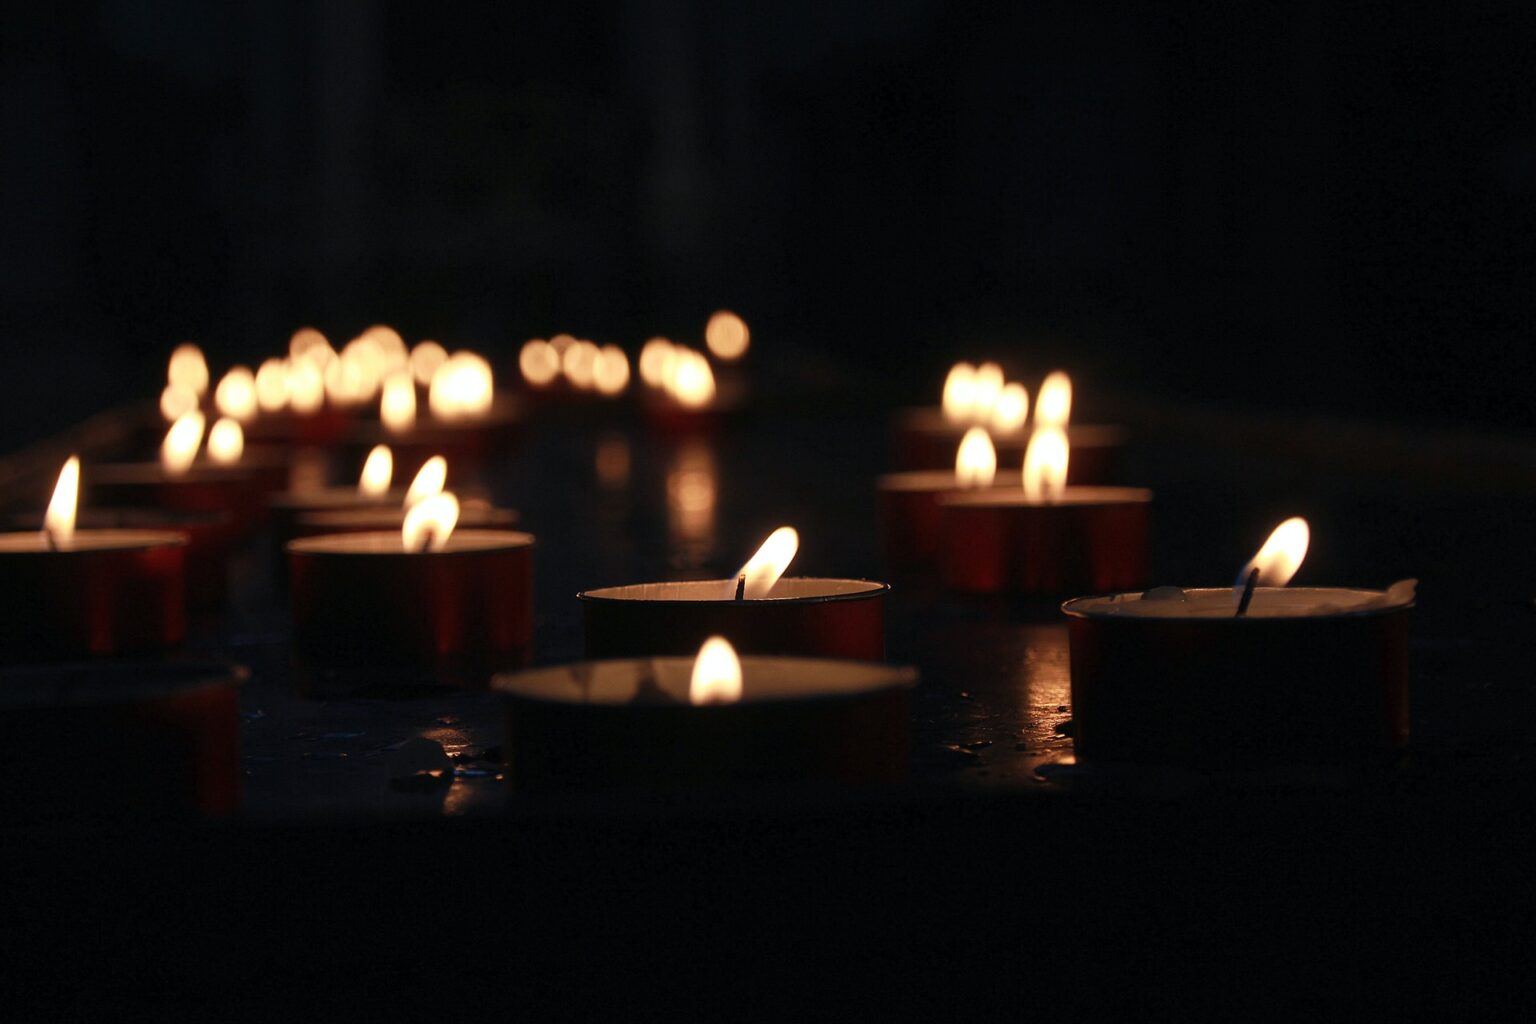 Photograph of multiple tea light candles floating on a dark body of water at night. There are many more candle flames out of focus in the background.